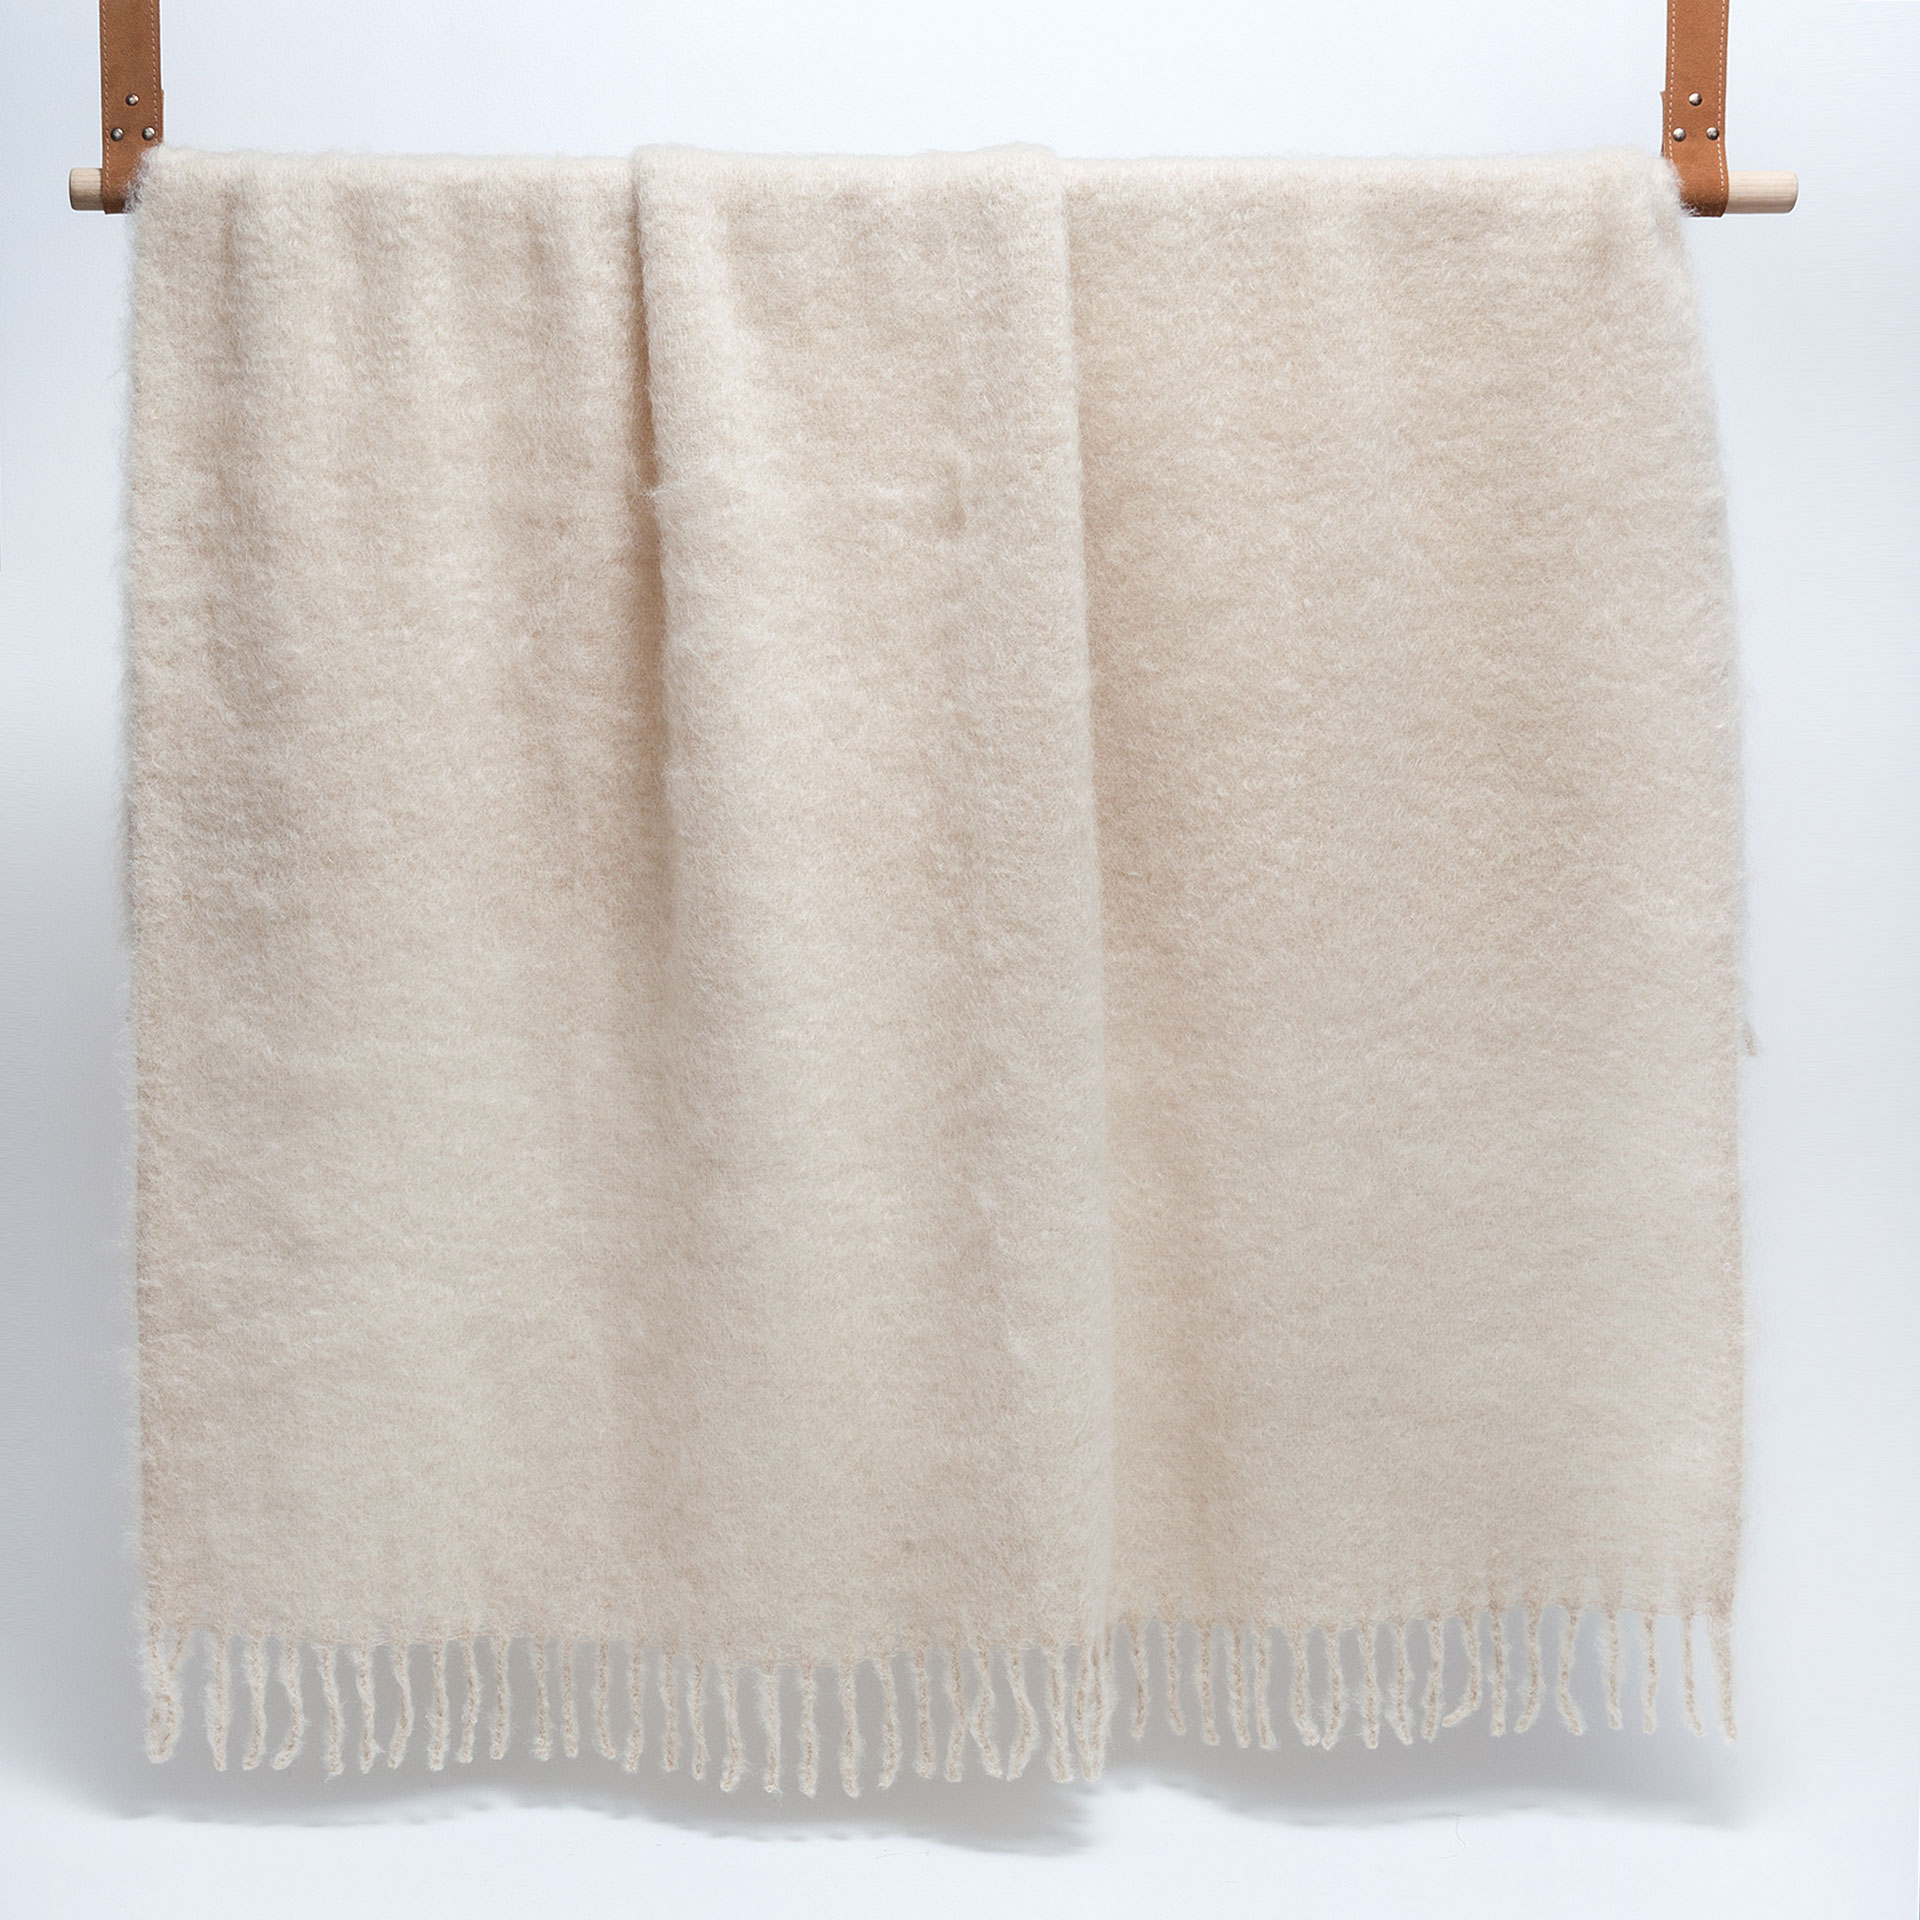 Mohair throw from Zara Home